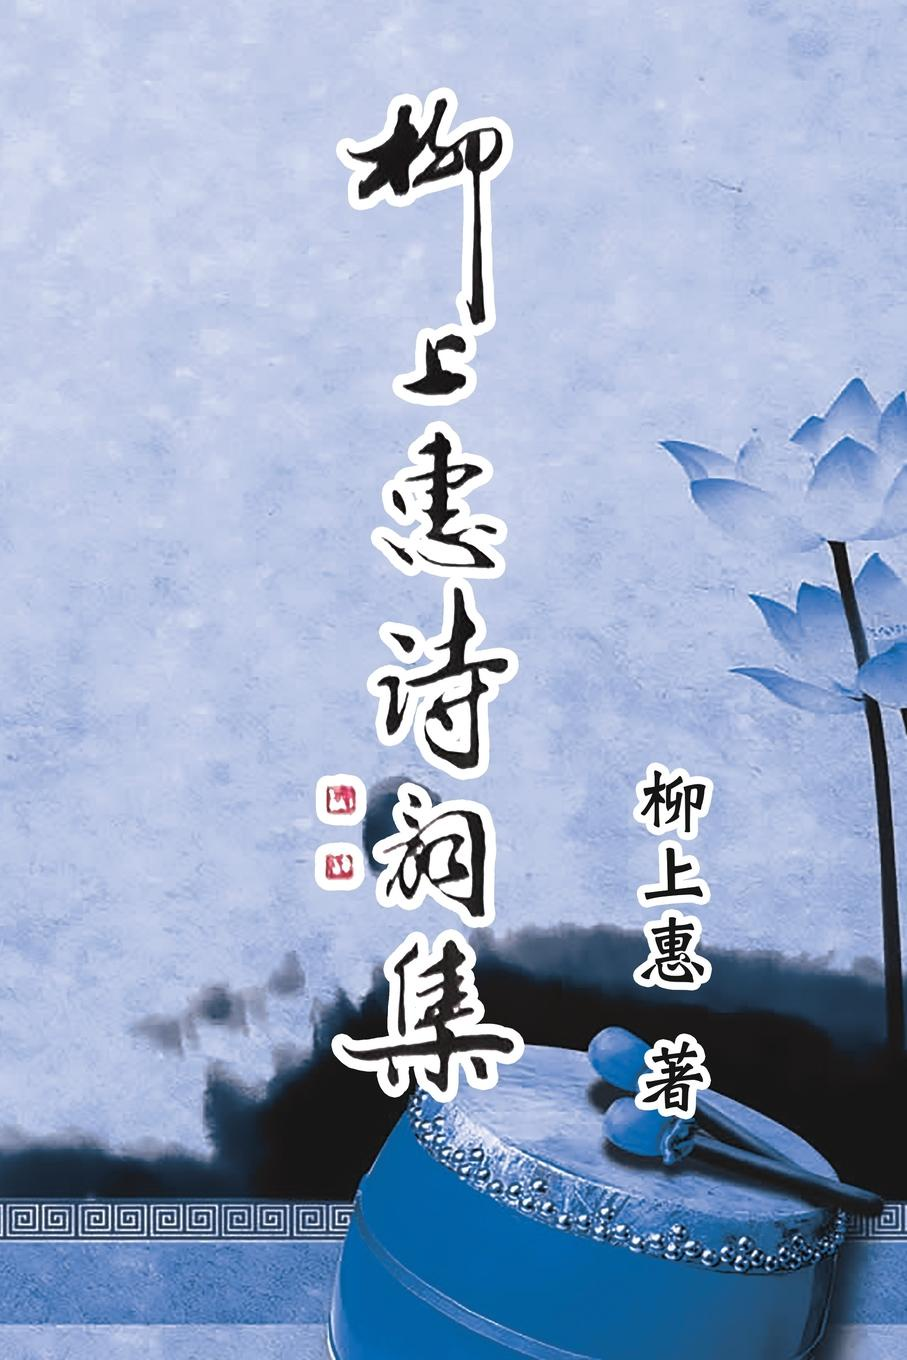 Cao Xiaoping, 柳上惠, 曹小平 Poetry of Caoxiaoping. ...... 爆笑大百科1